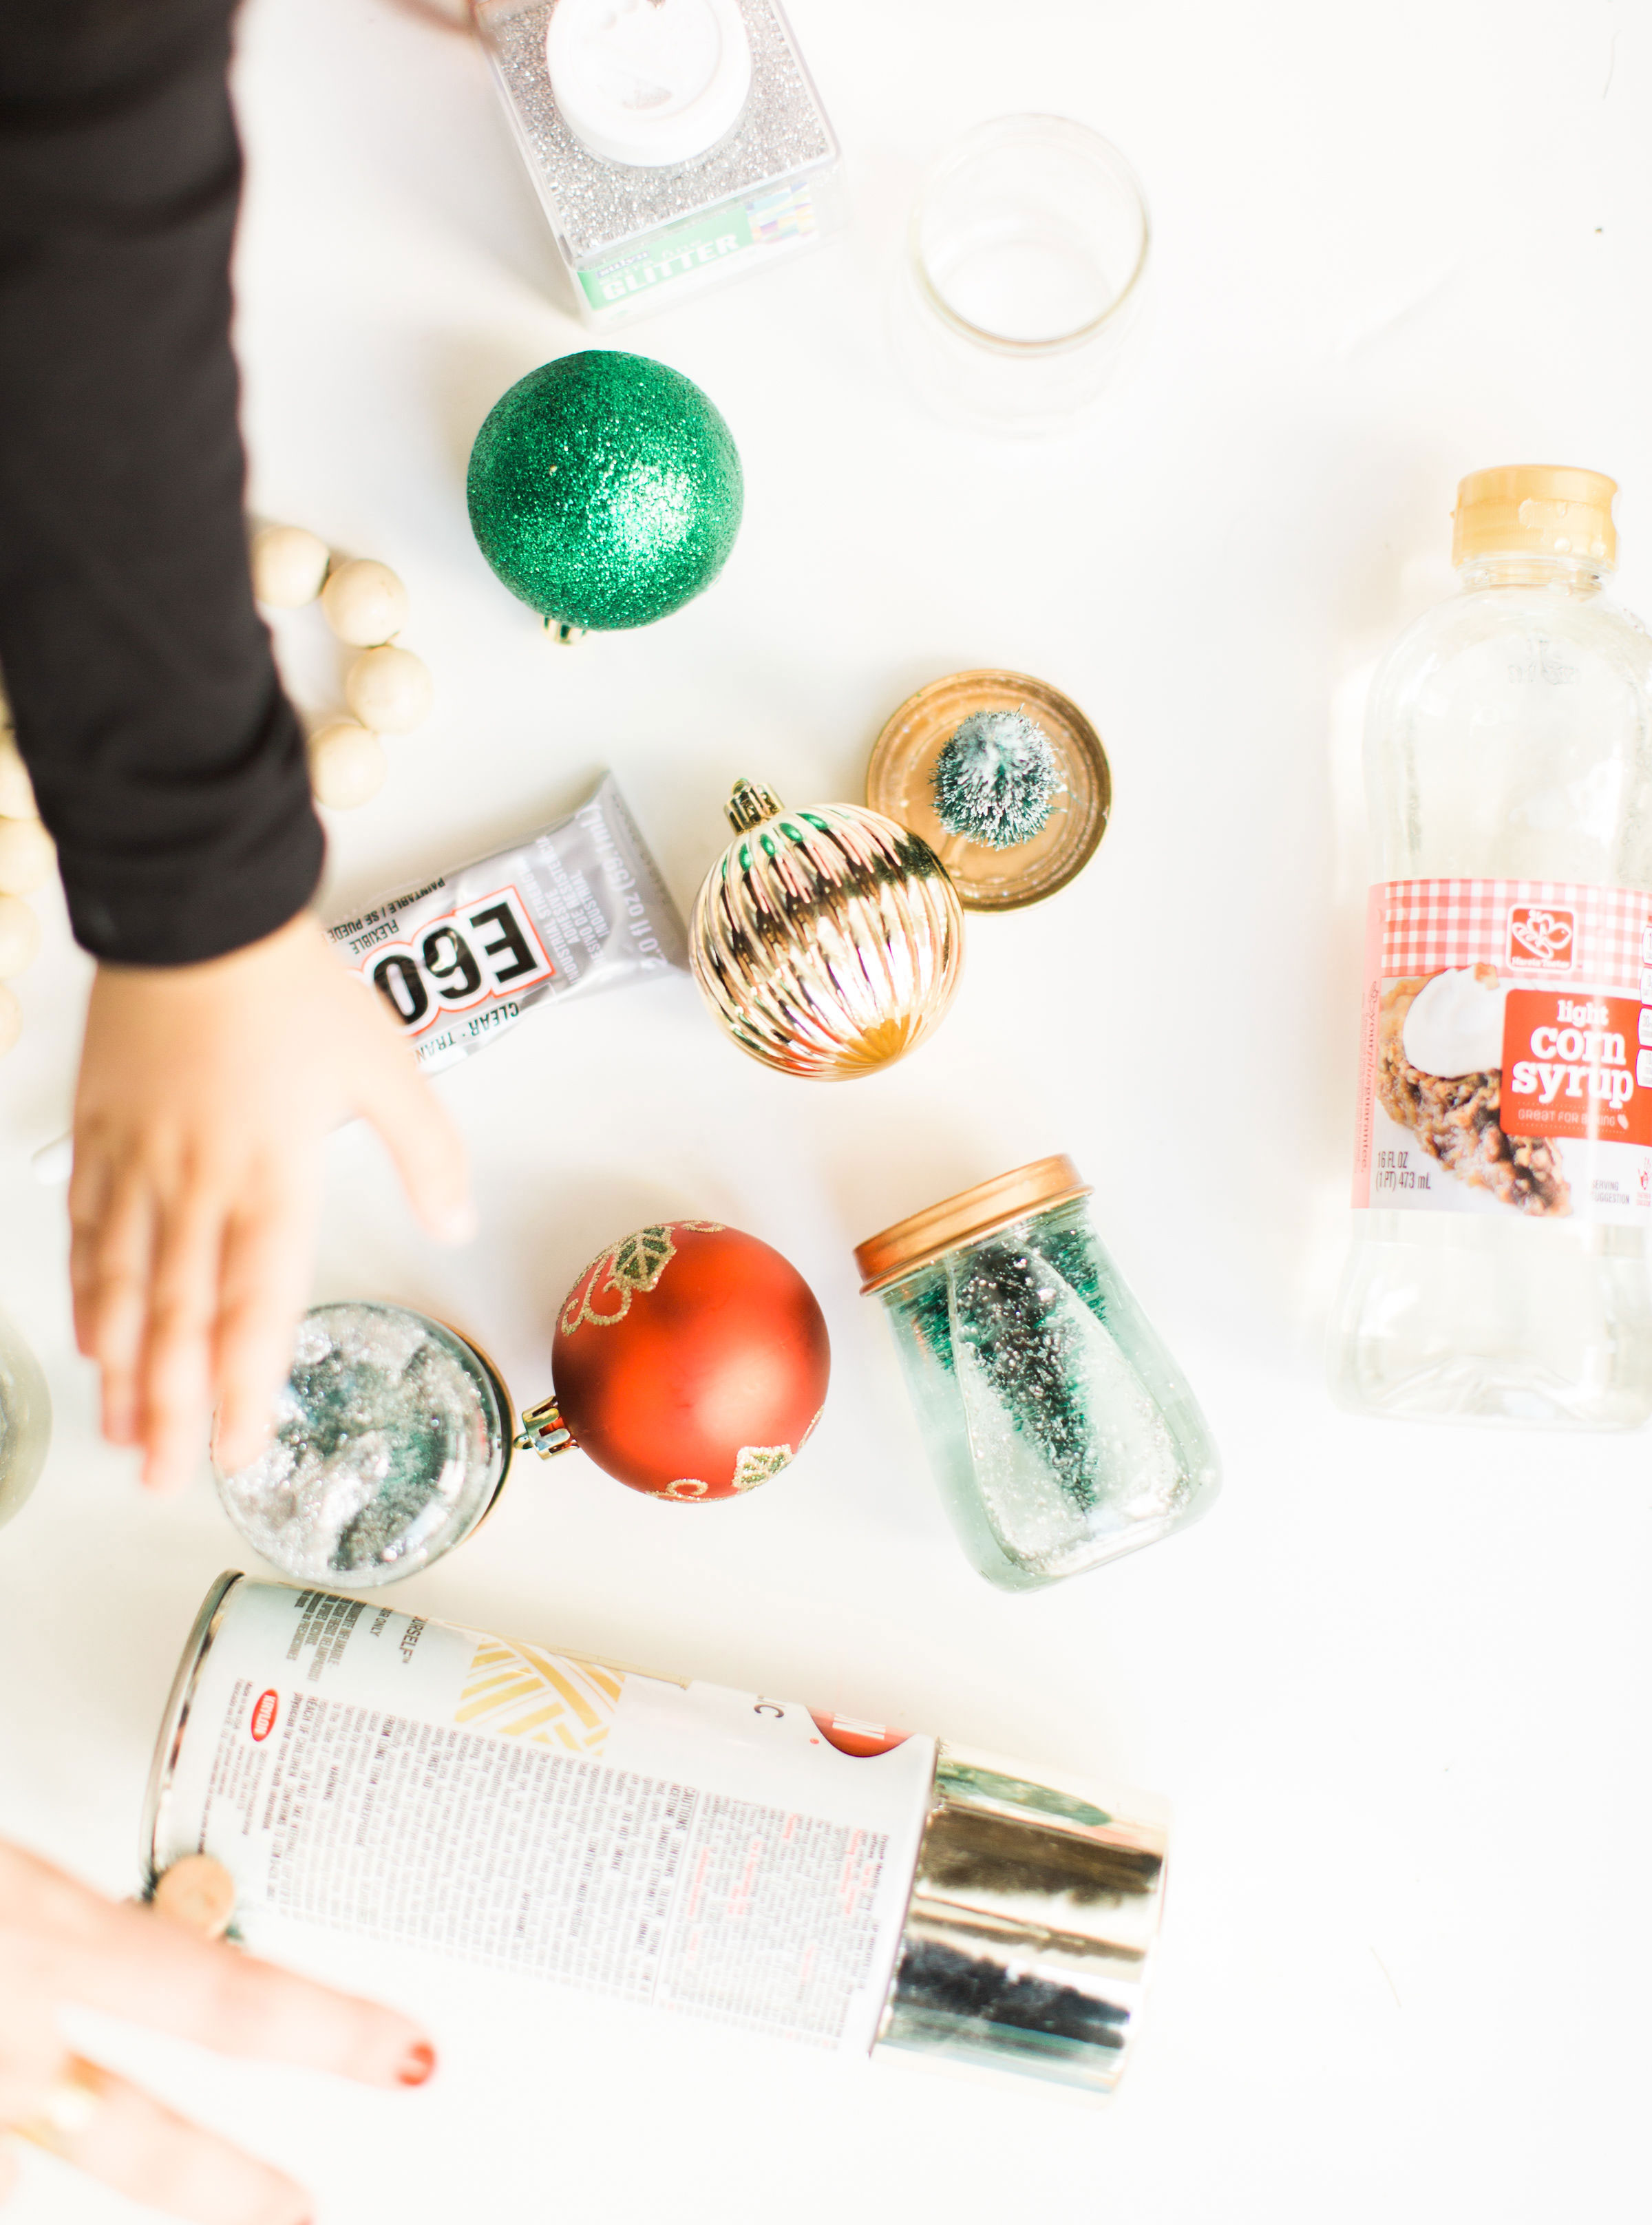 How to Make Glitter DIY Snow Globes With Kids | Glitter, Inc.